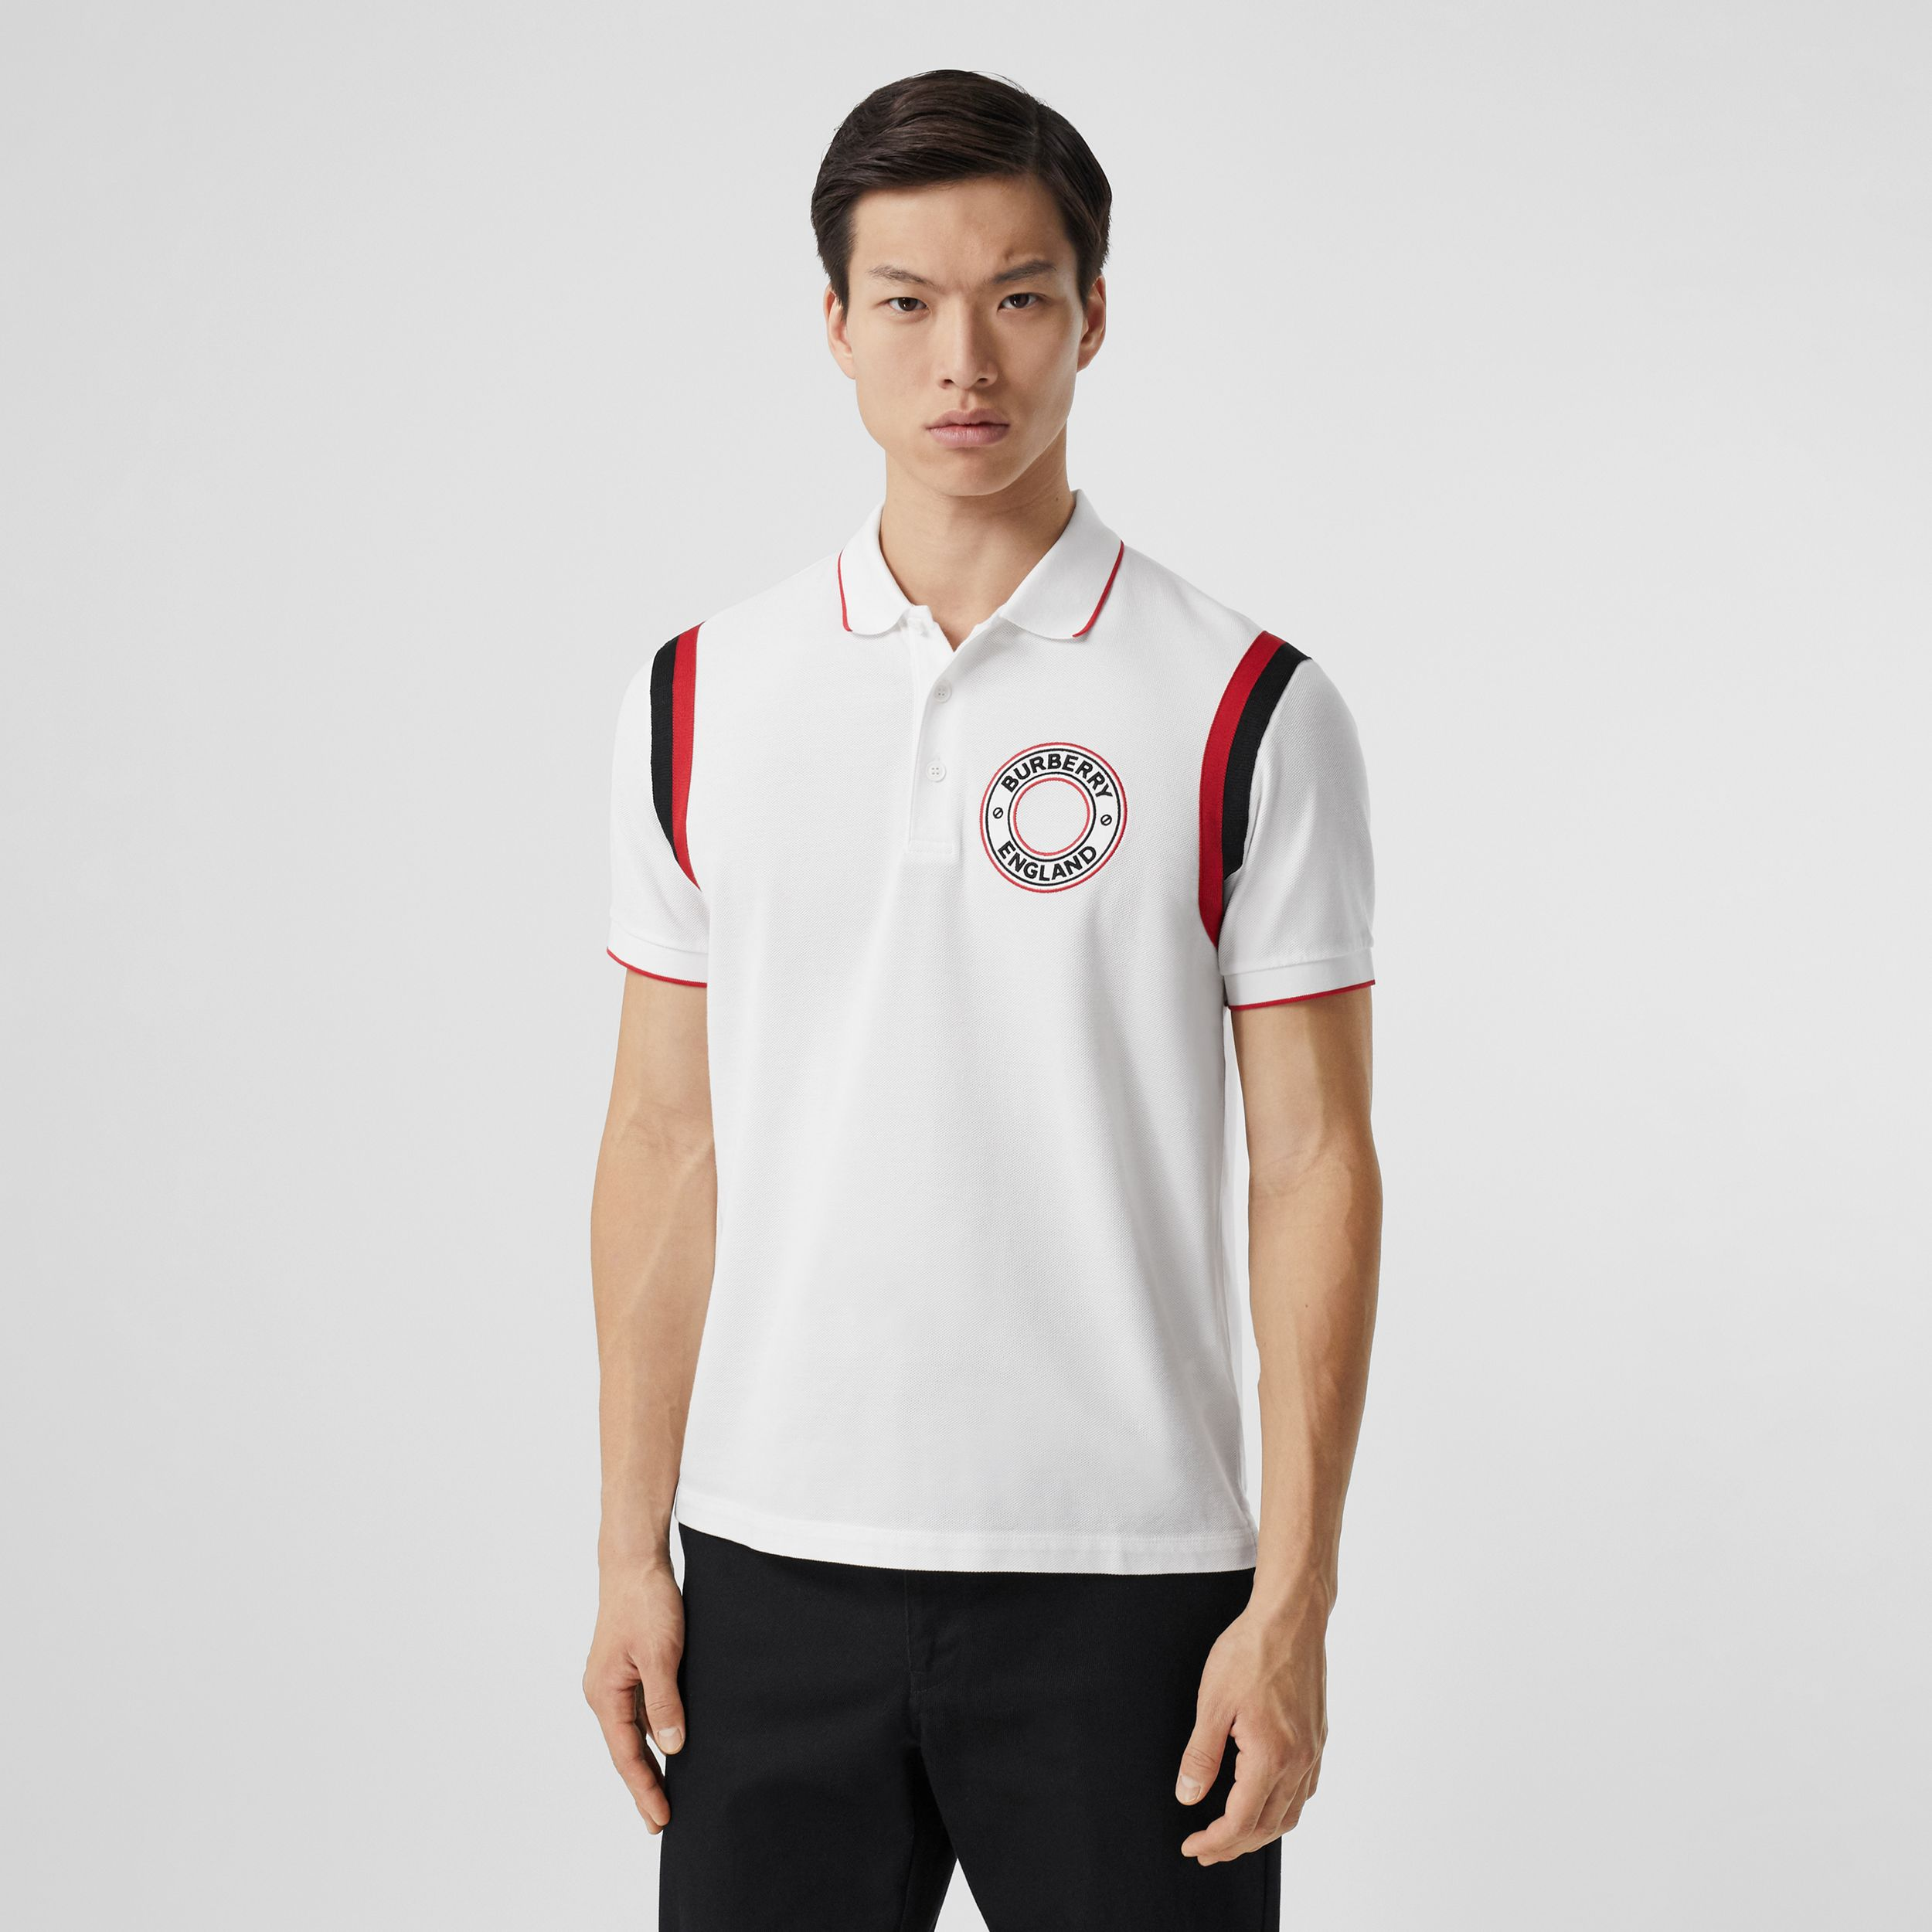 Logo Graphic Appliqué Cotton Piqué Polo Shirt in White - Men | Burberry - 1